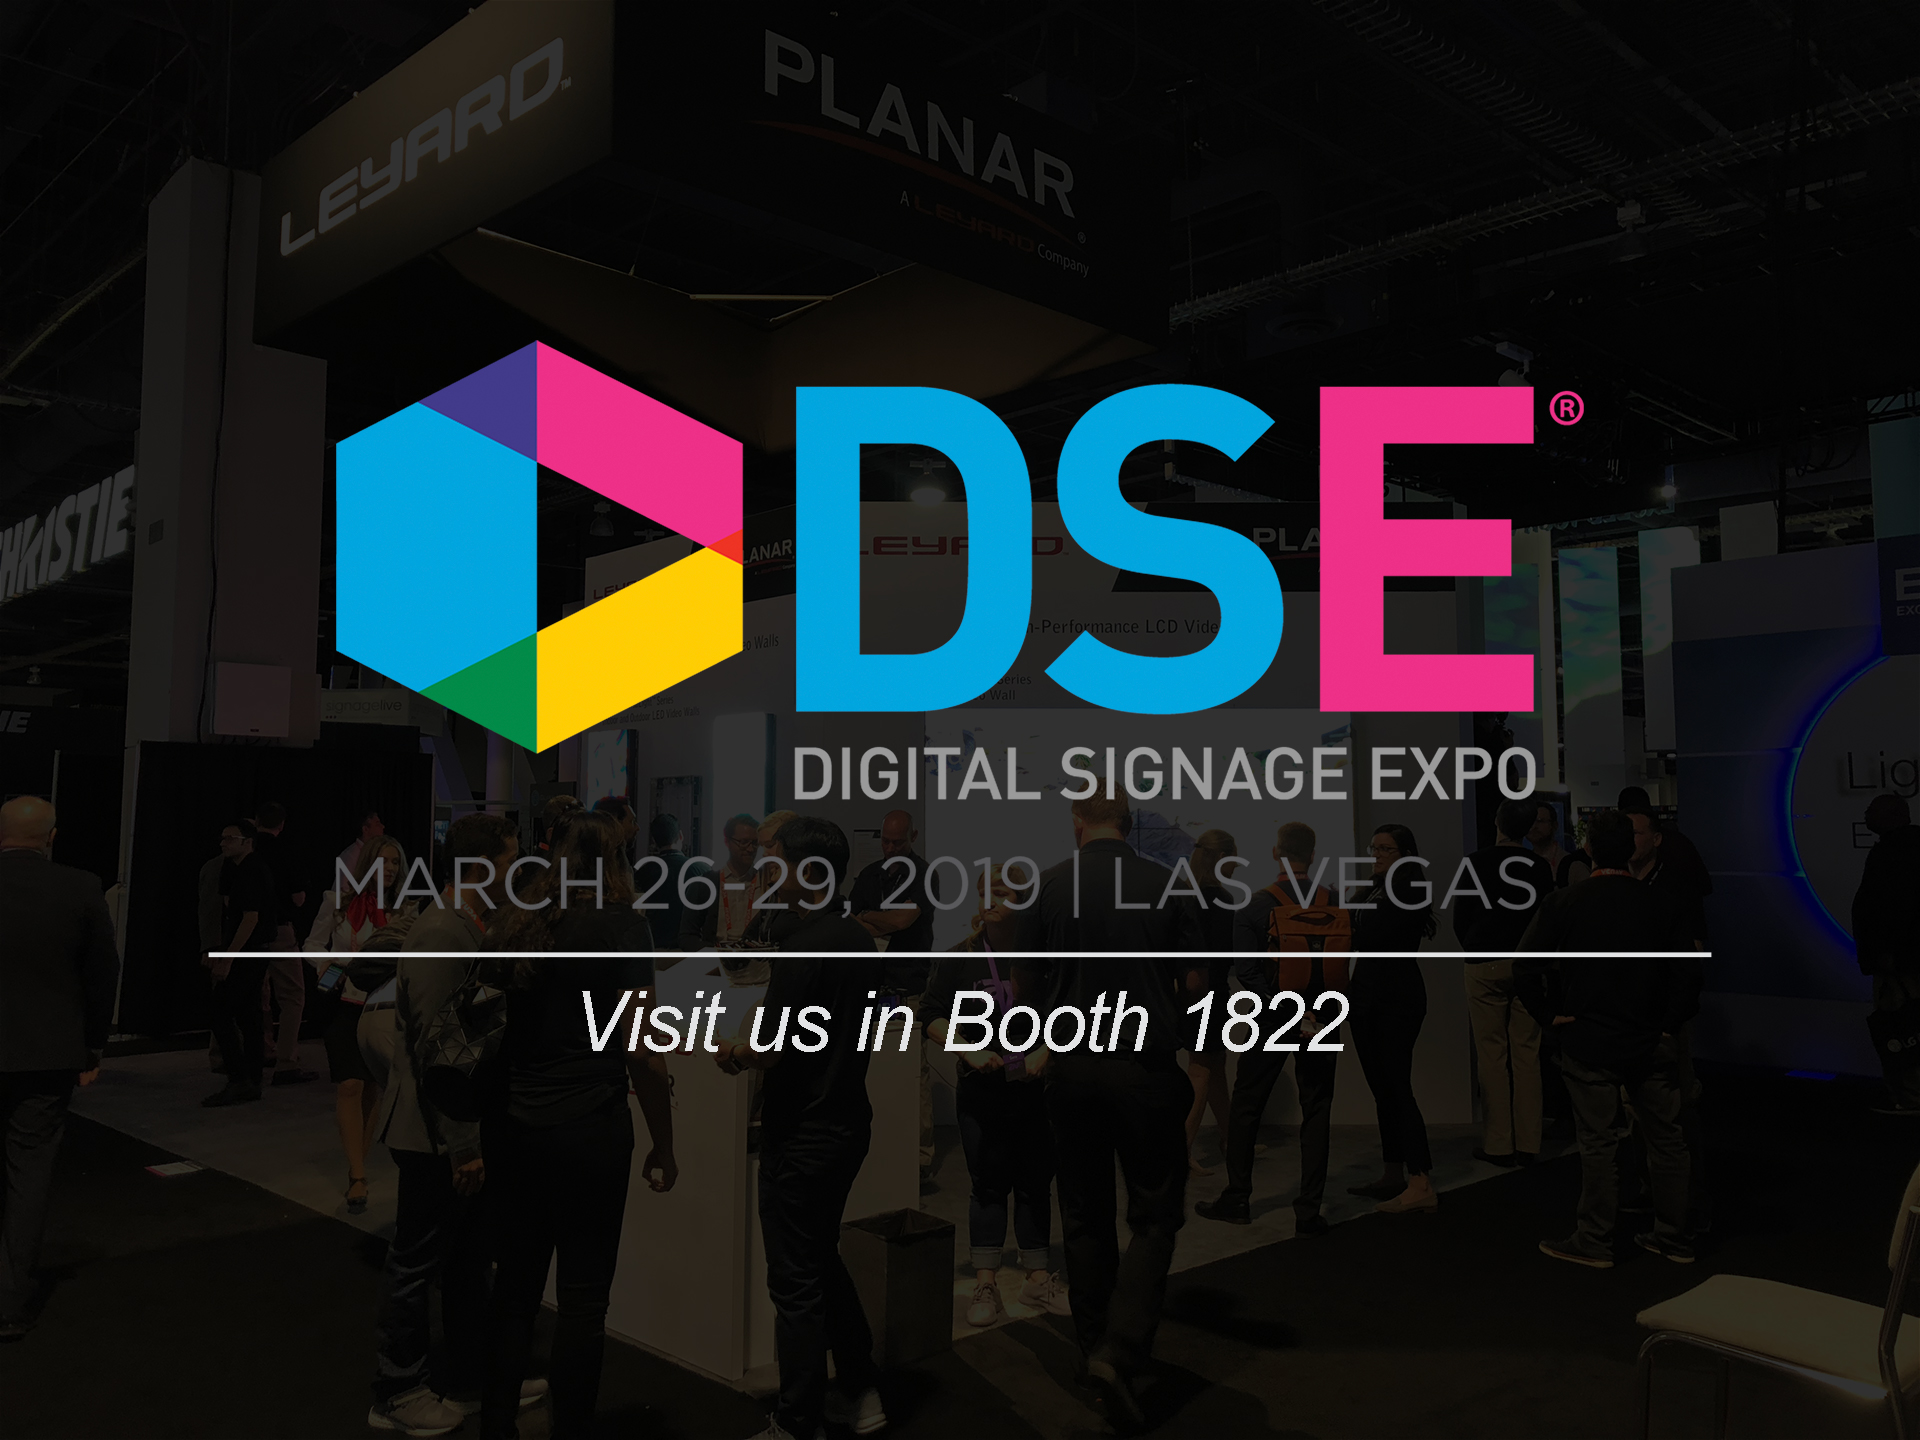 DSE Press Announcement Image.jpg